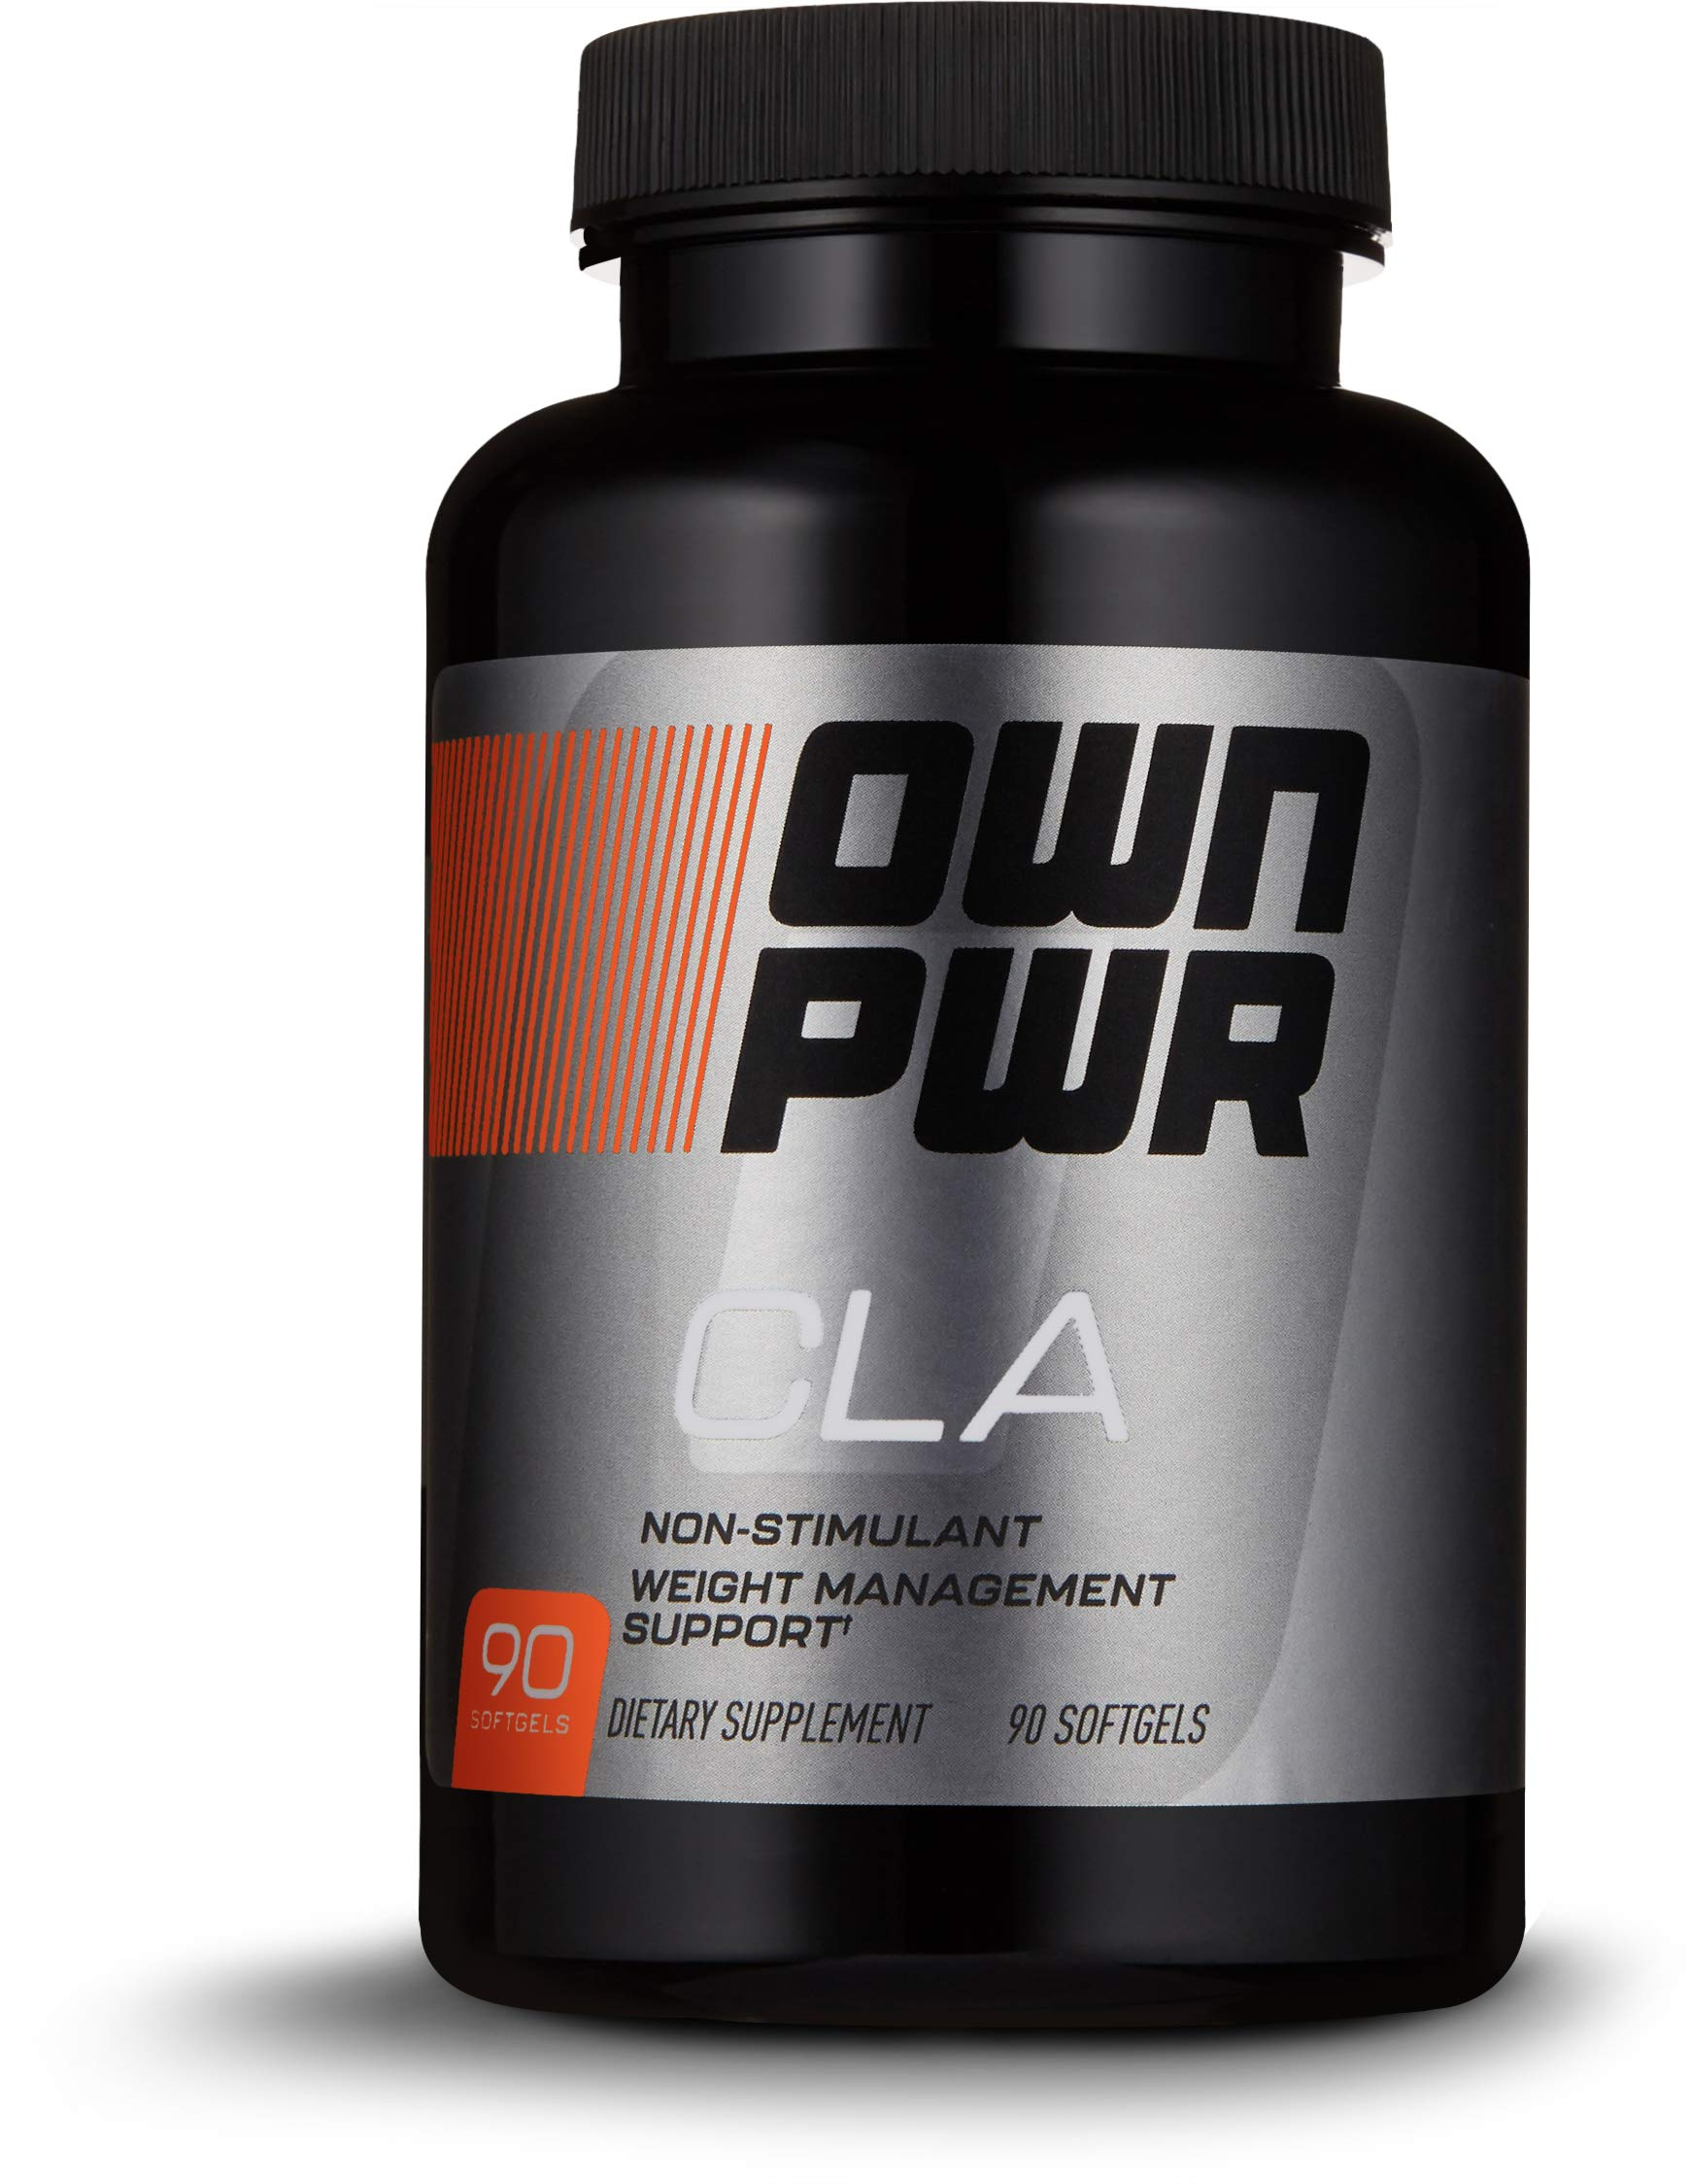 OWN PWR CLA Supplement, 90 Softgels, Conjugated Linoleic Acid 800 mg